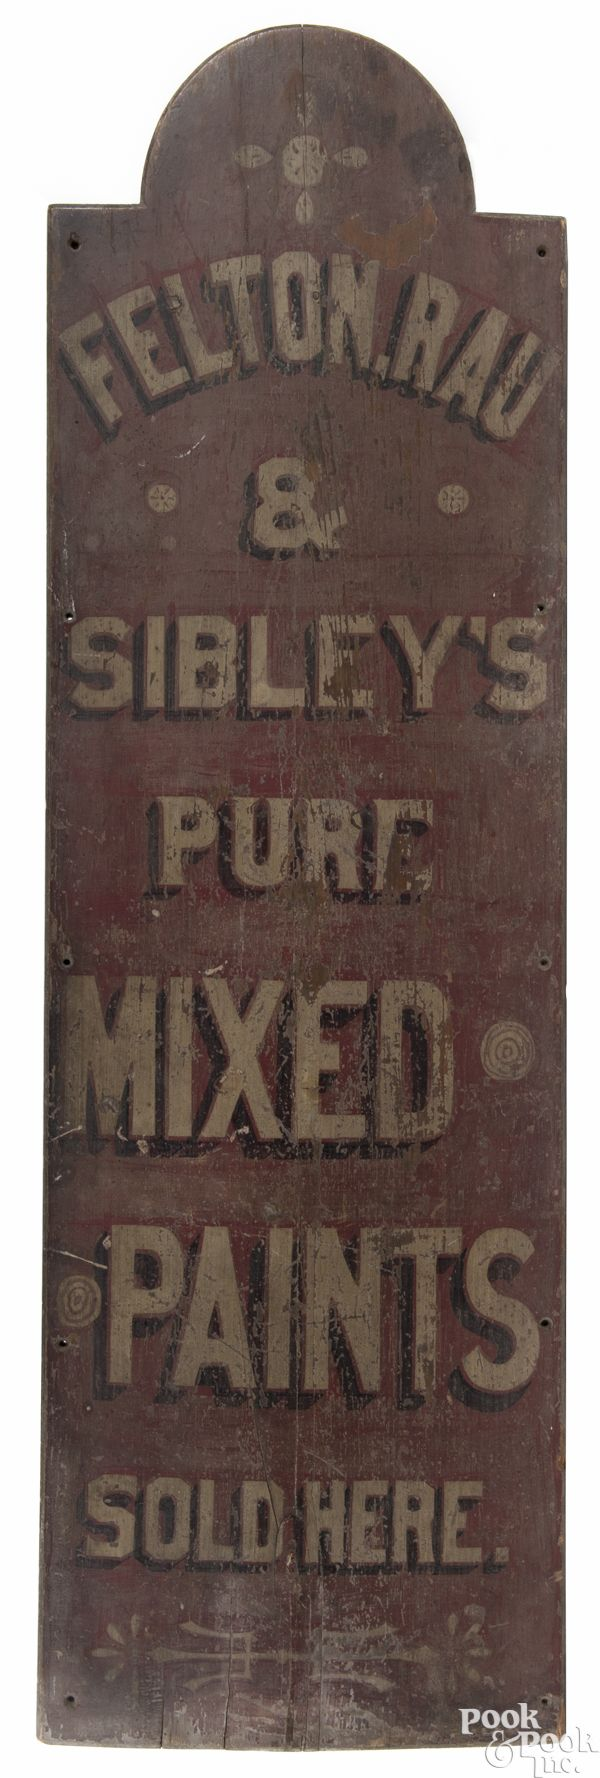 Philadelphia painted pine trade sign, ca. 1880, for Felton, Rau & Sibley's Mixed Paints